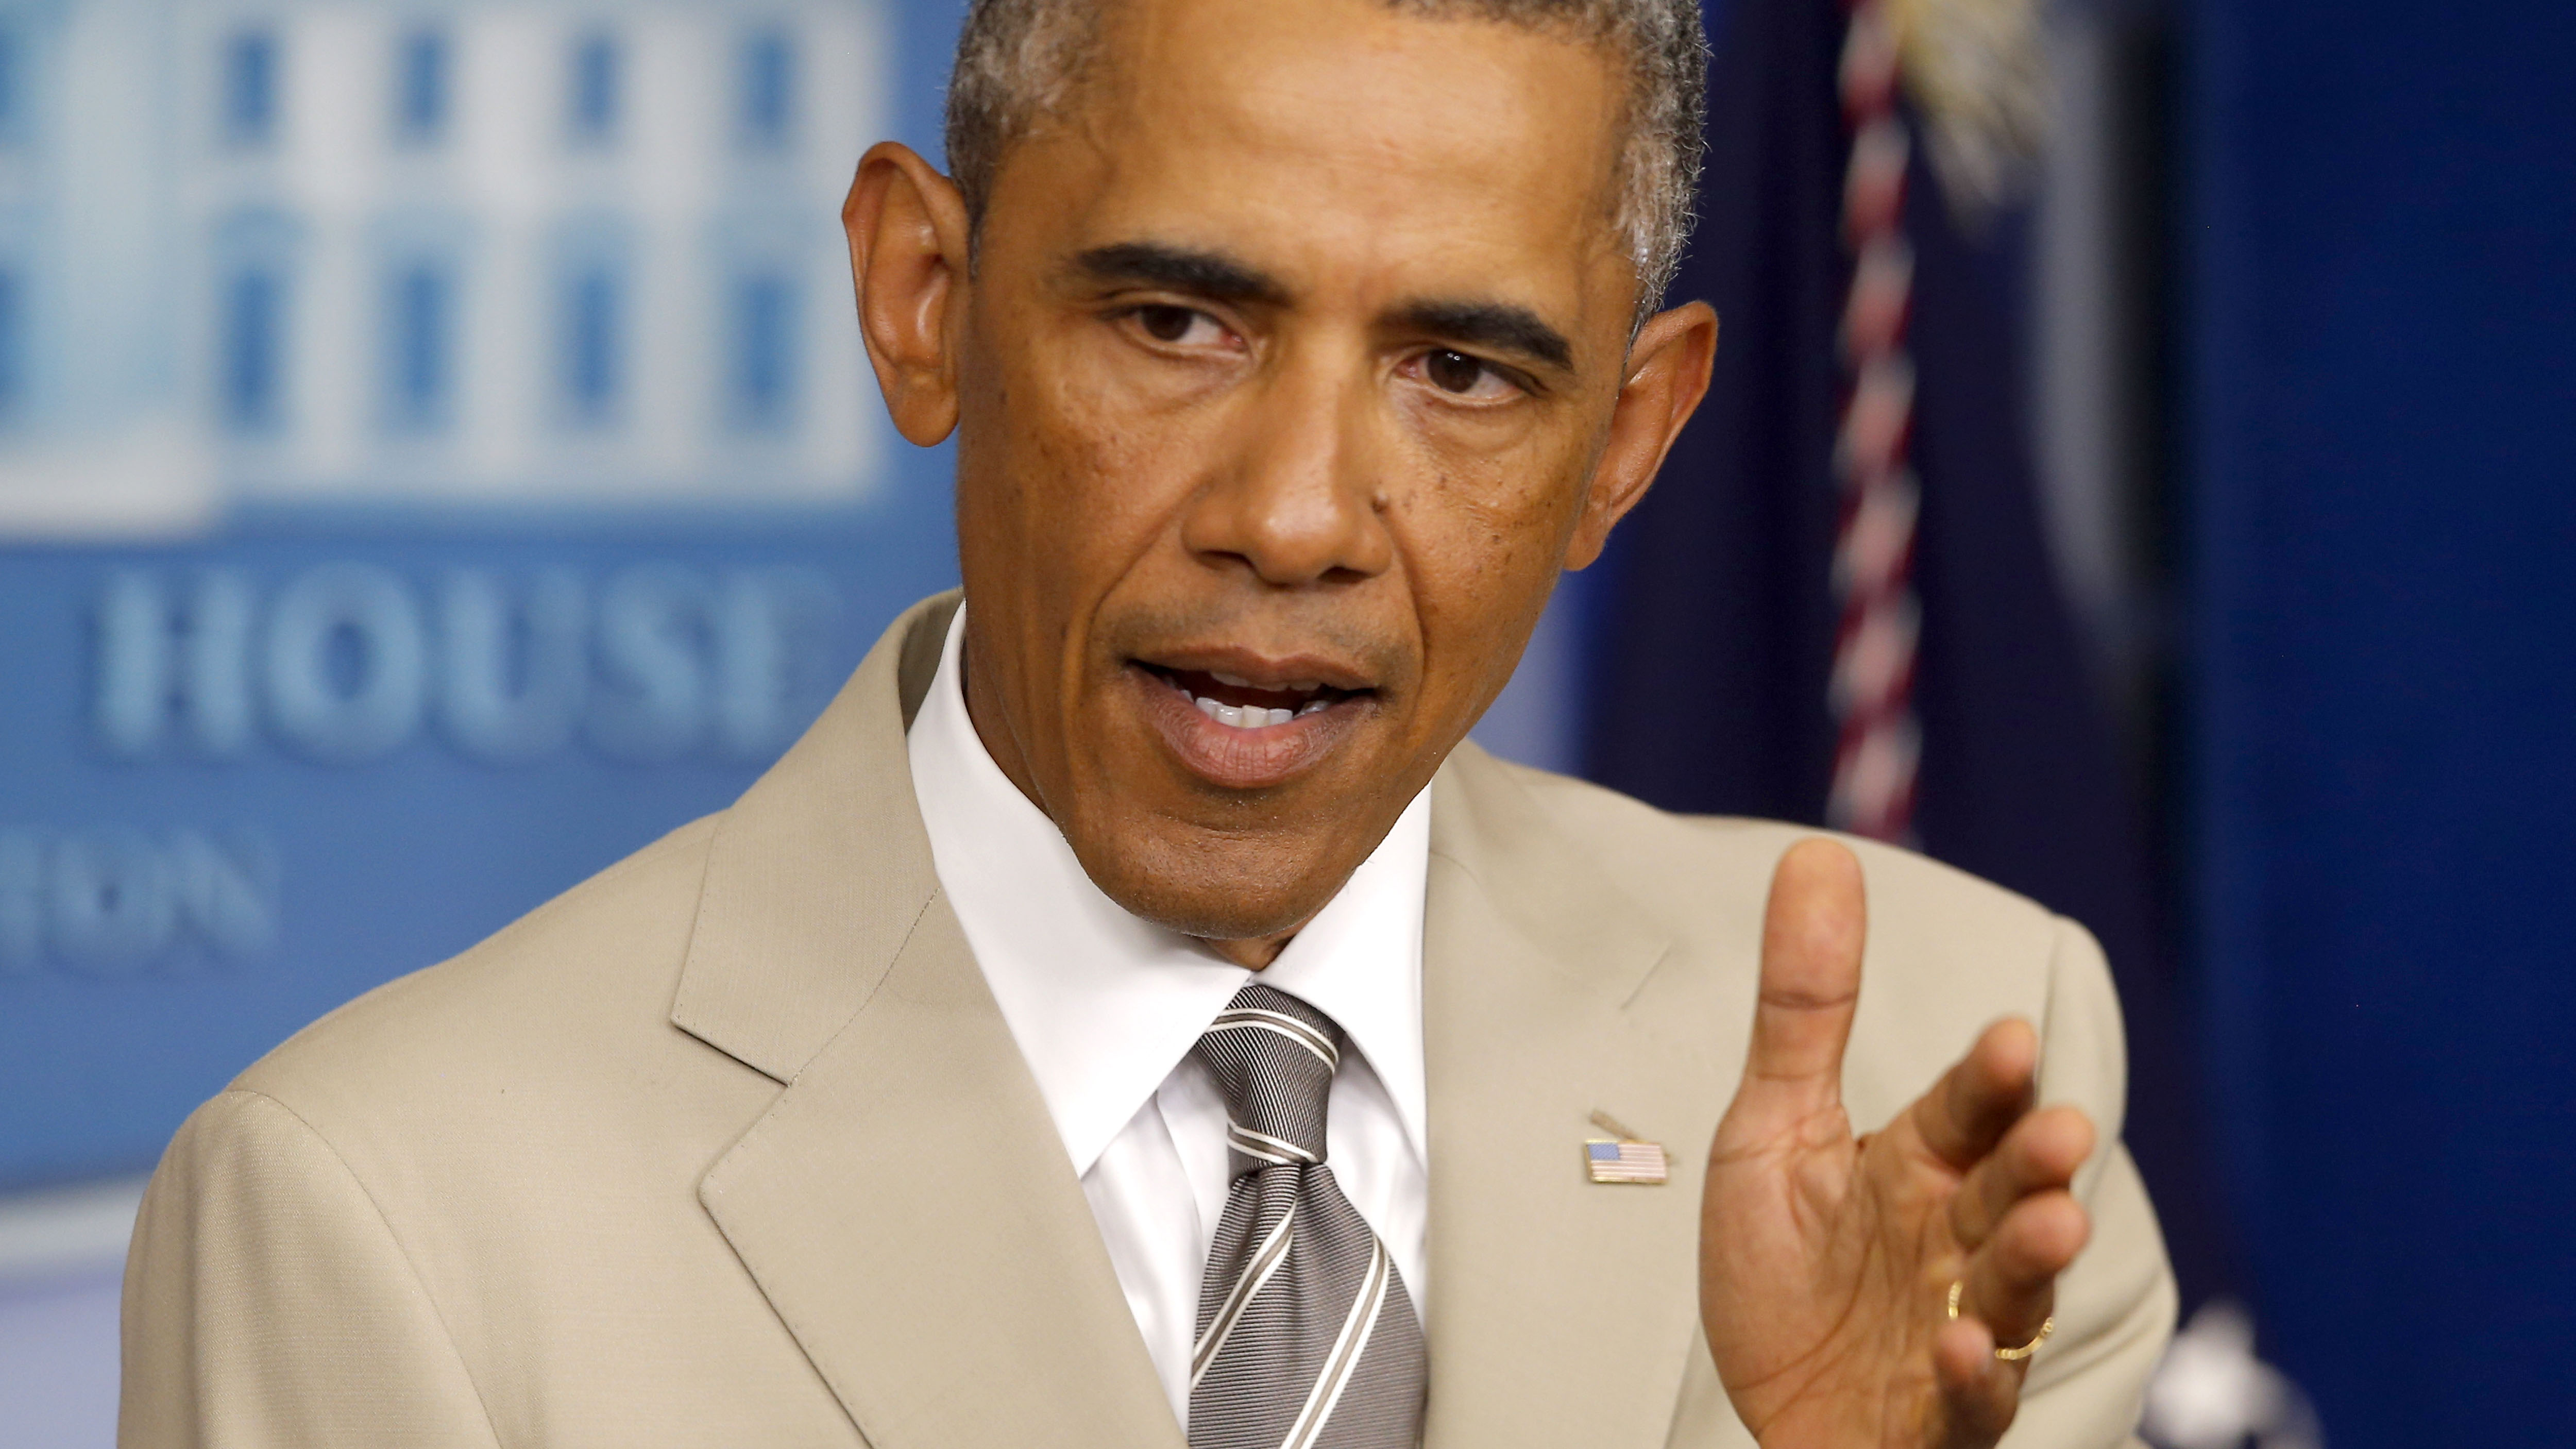 President Barack Obama in his tan suit at a press conference Thursday.